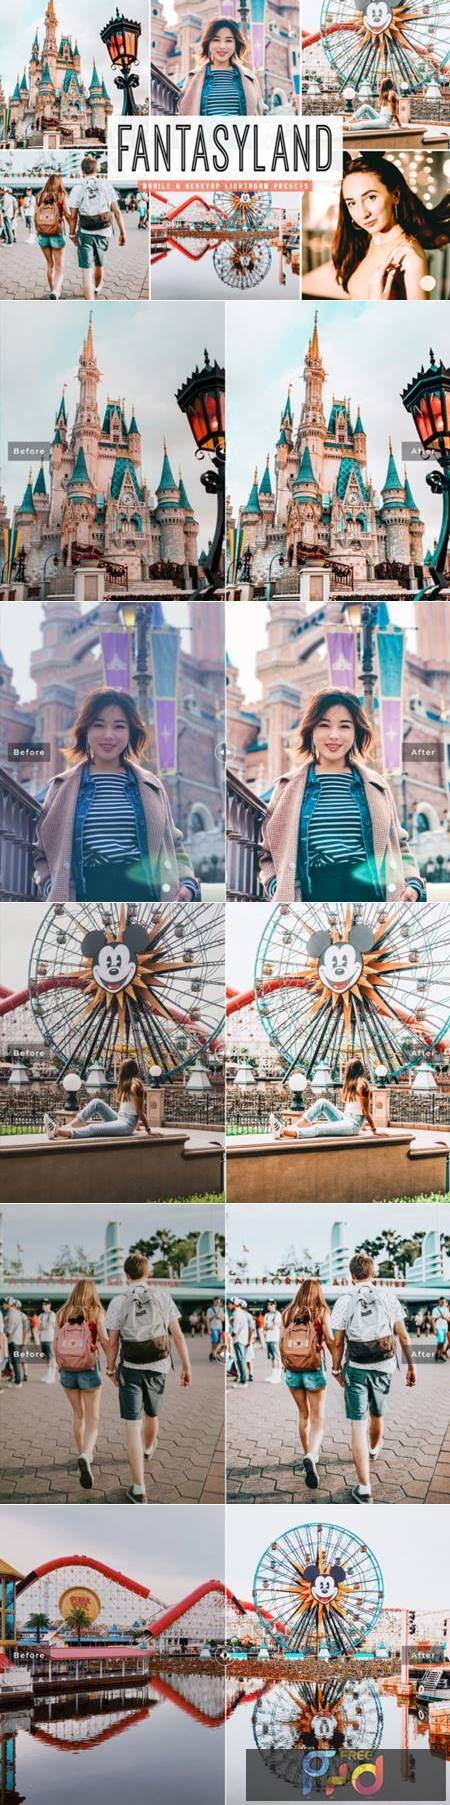 Fantasyland Lightroom Presets Pack 3786406 1